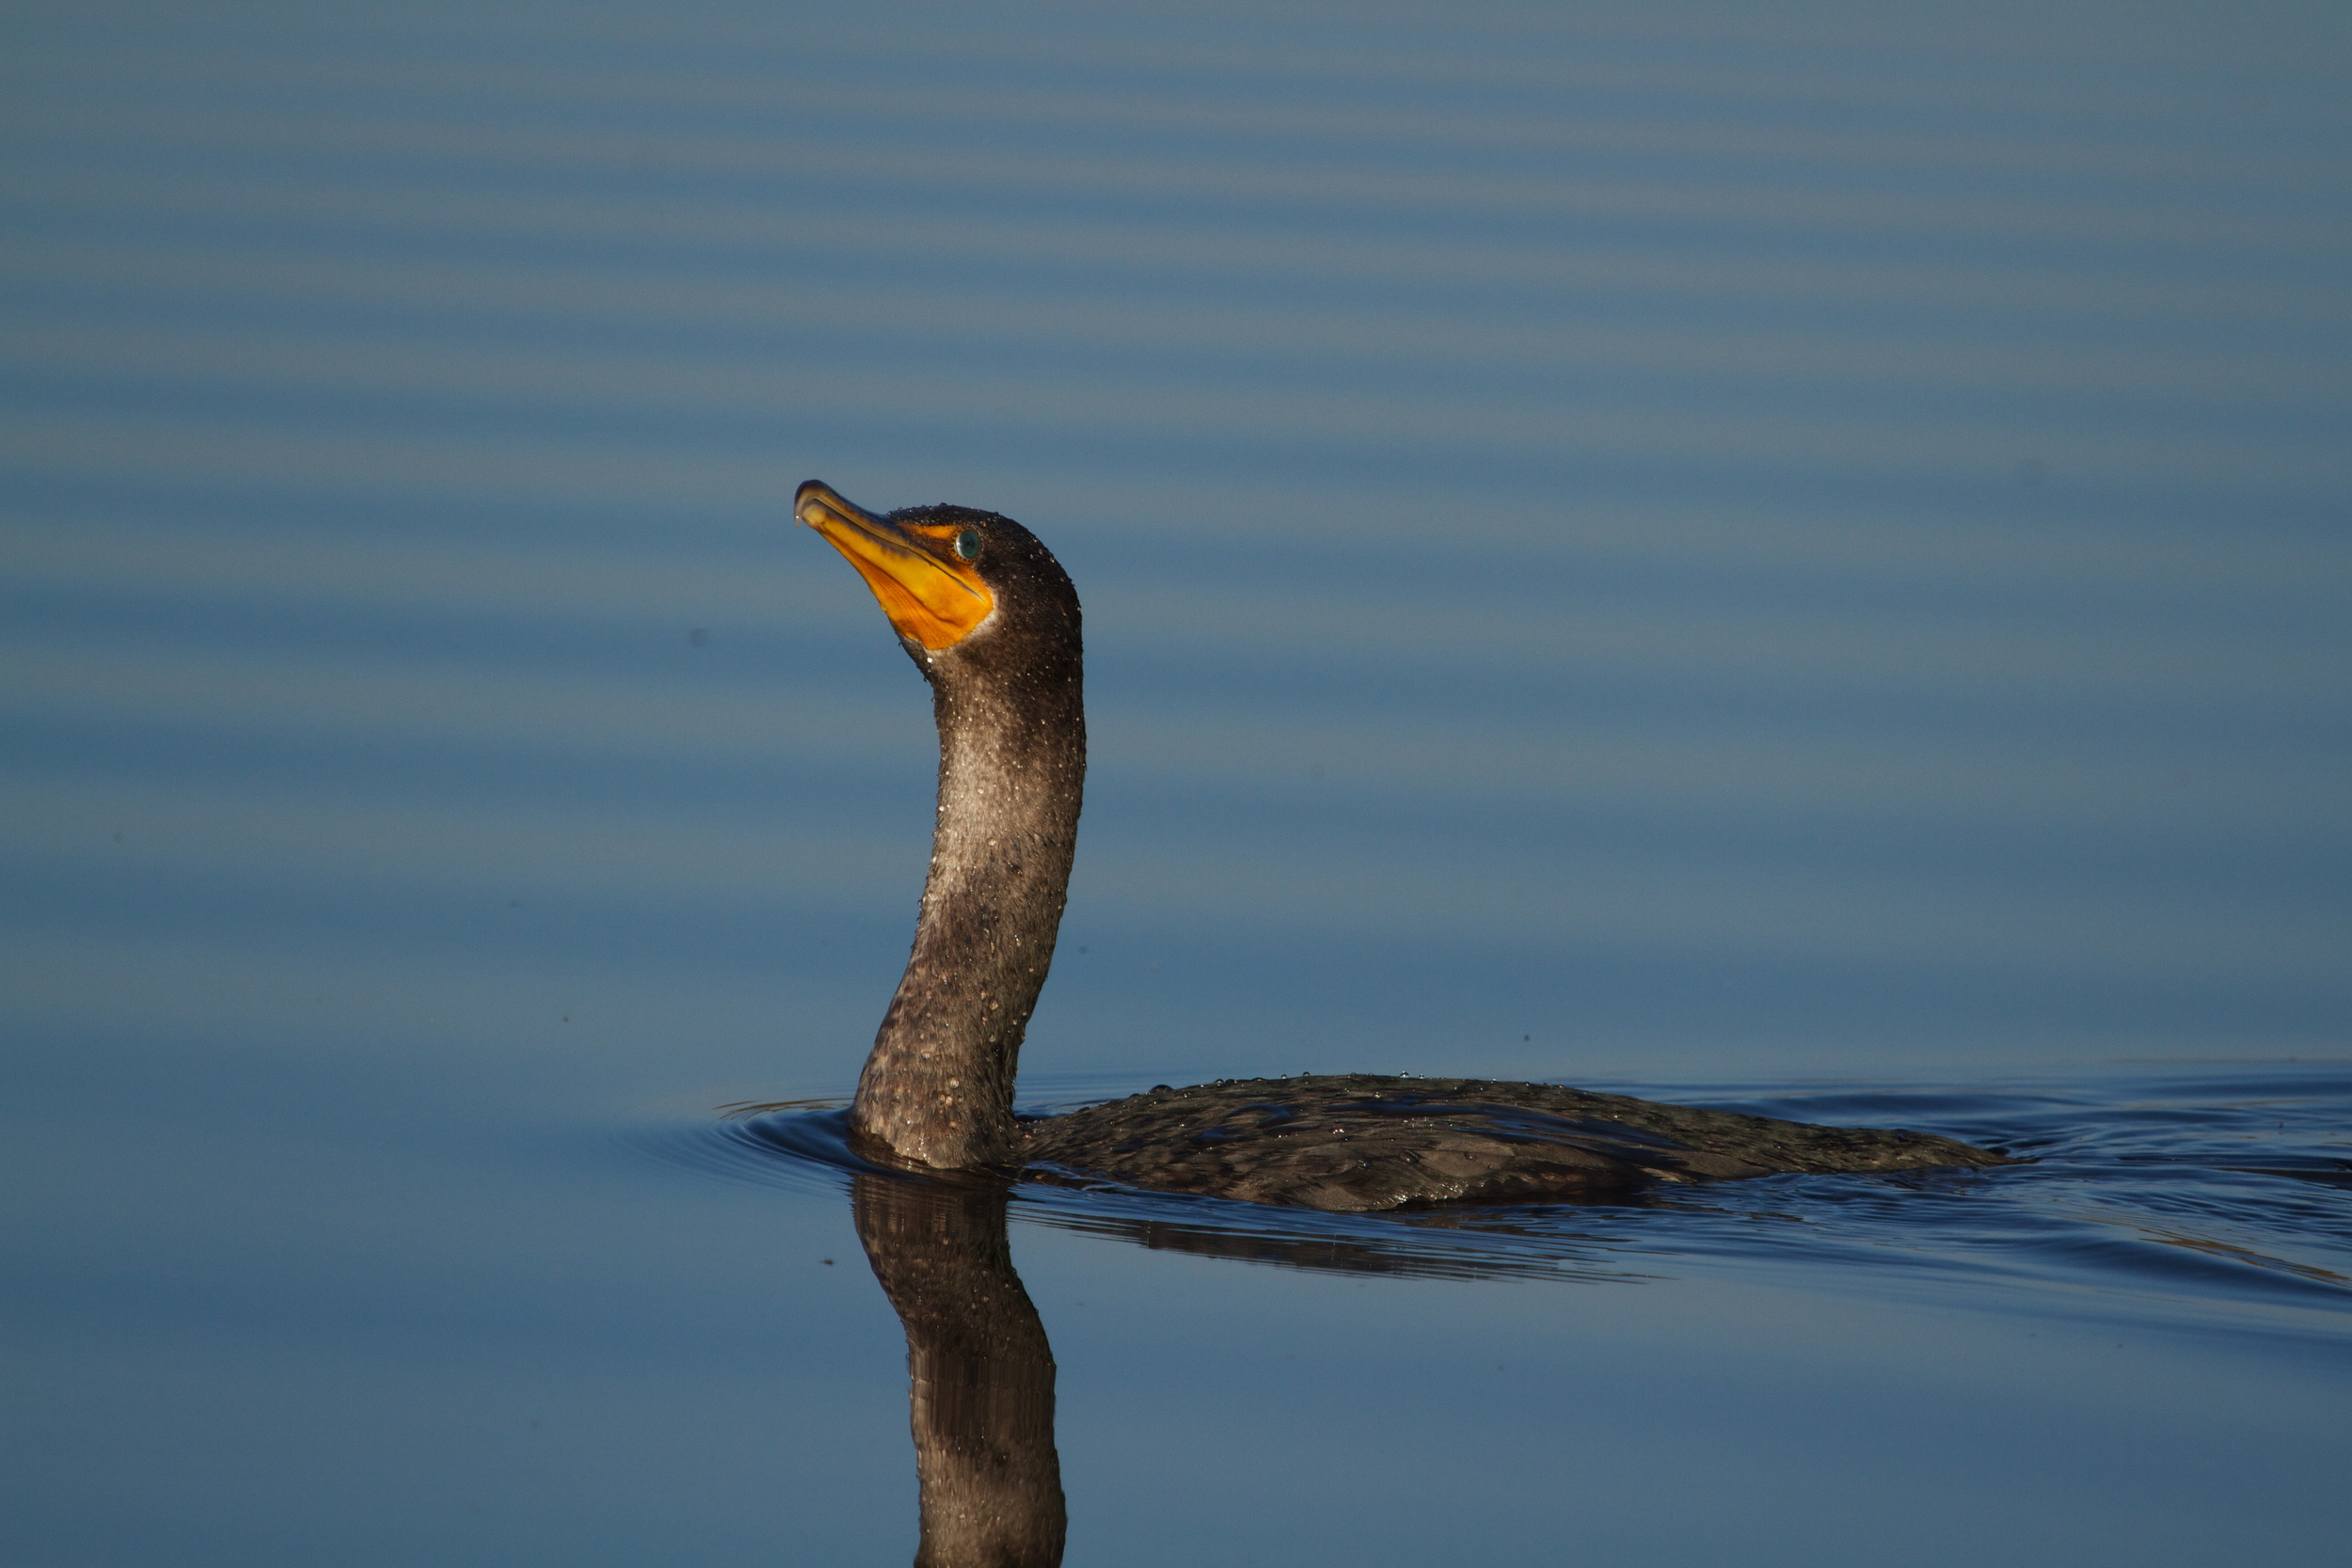 The cormorant looks up and declares it looks like spring!